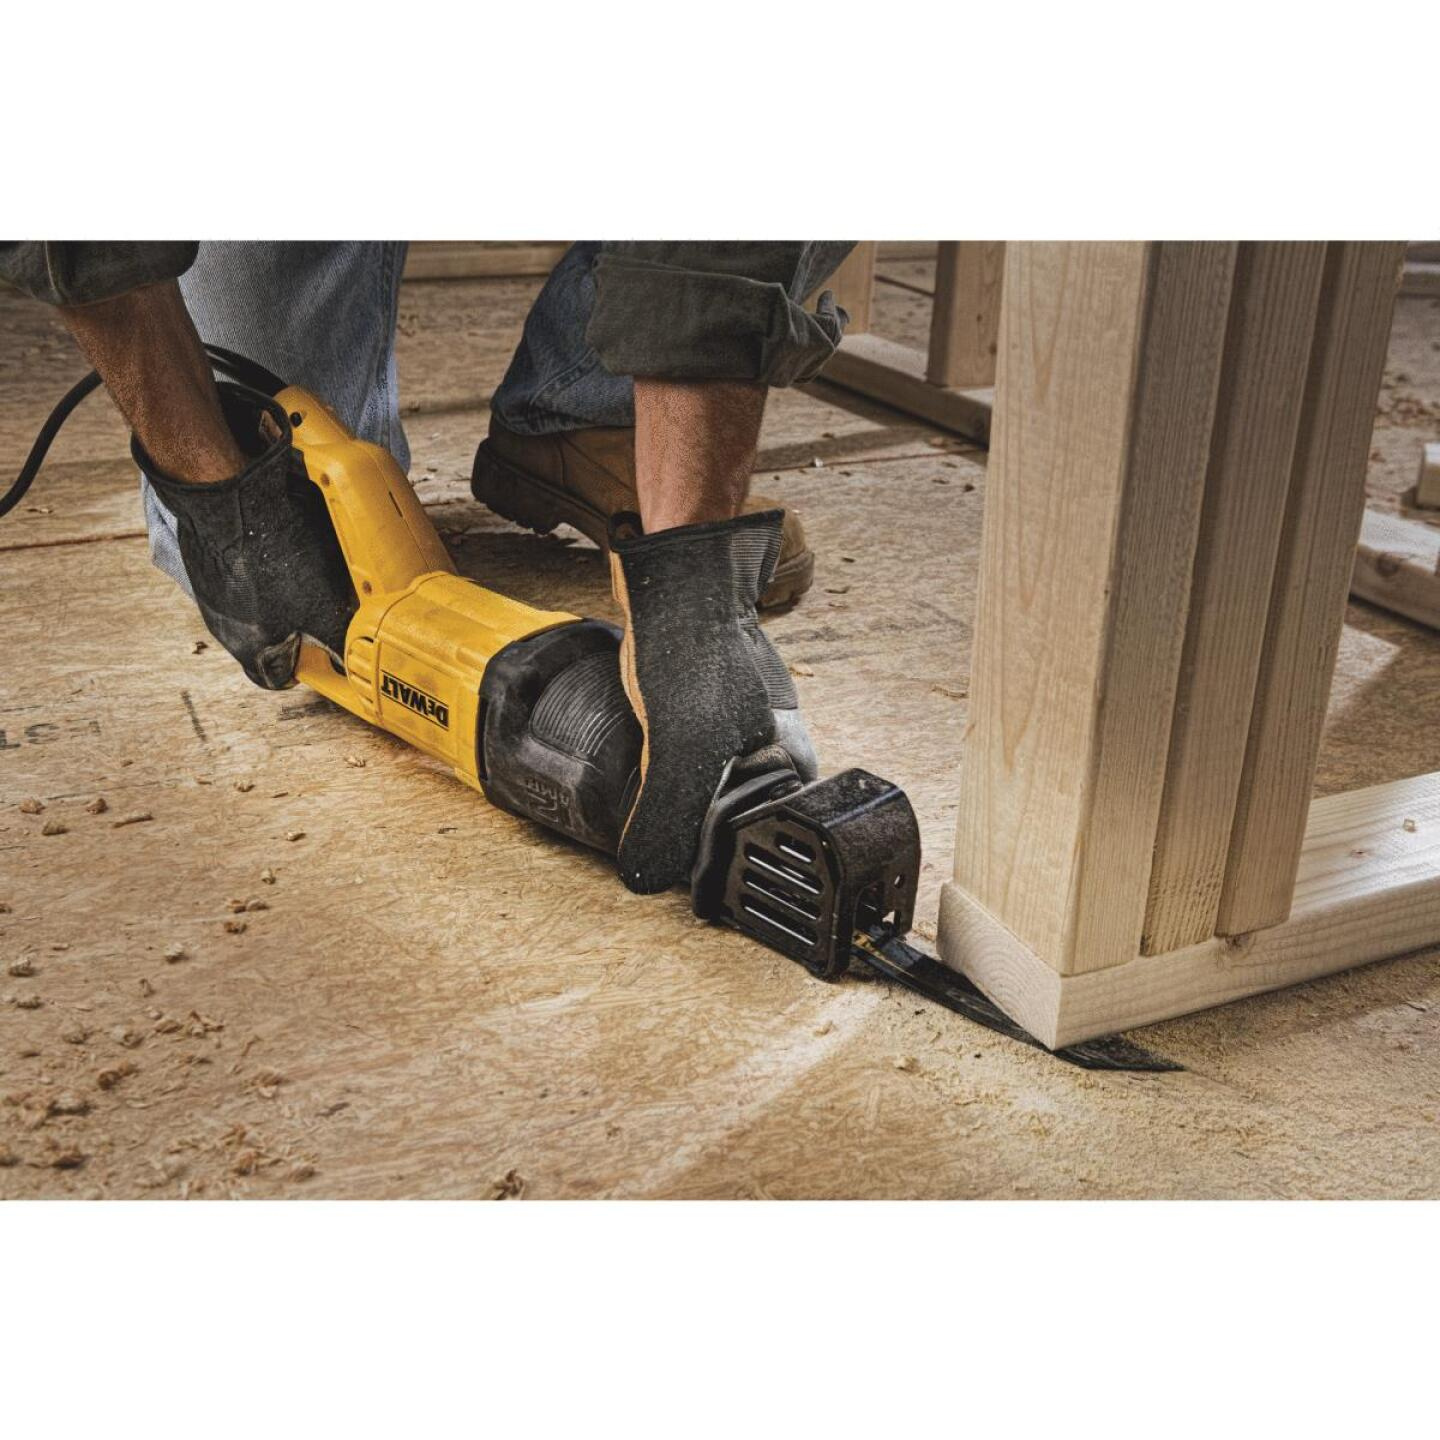 DeWalt 12-Amp Reciprocating Saw Image 5